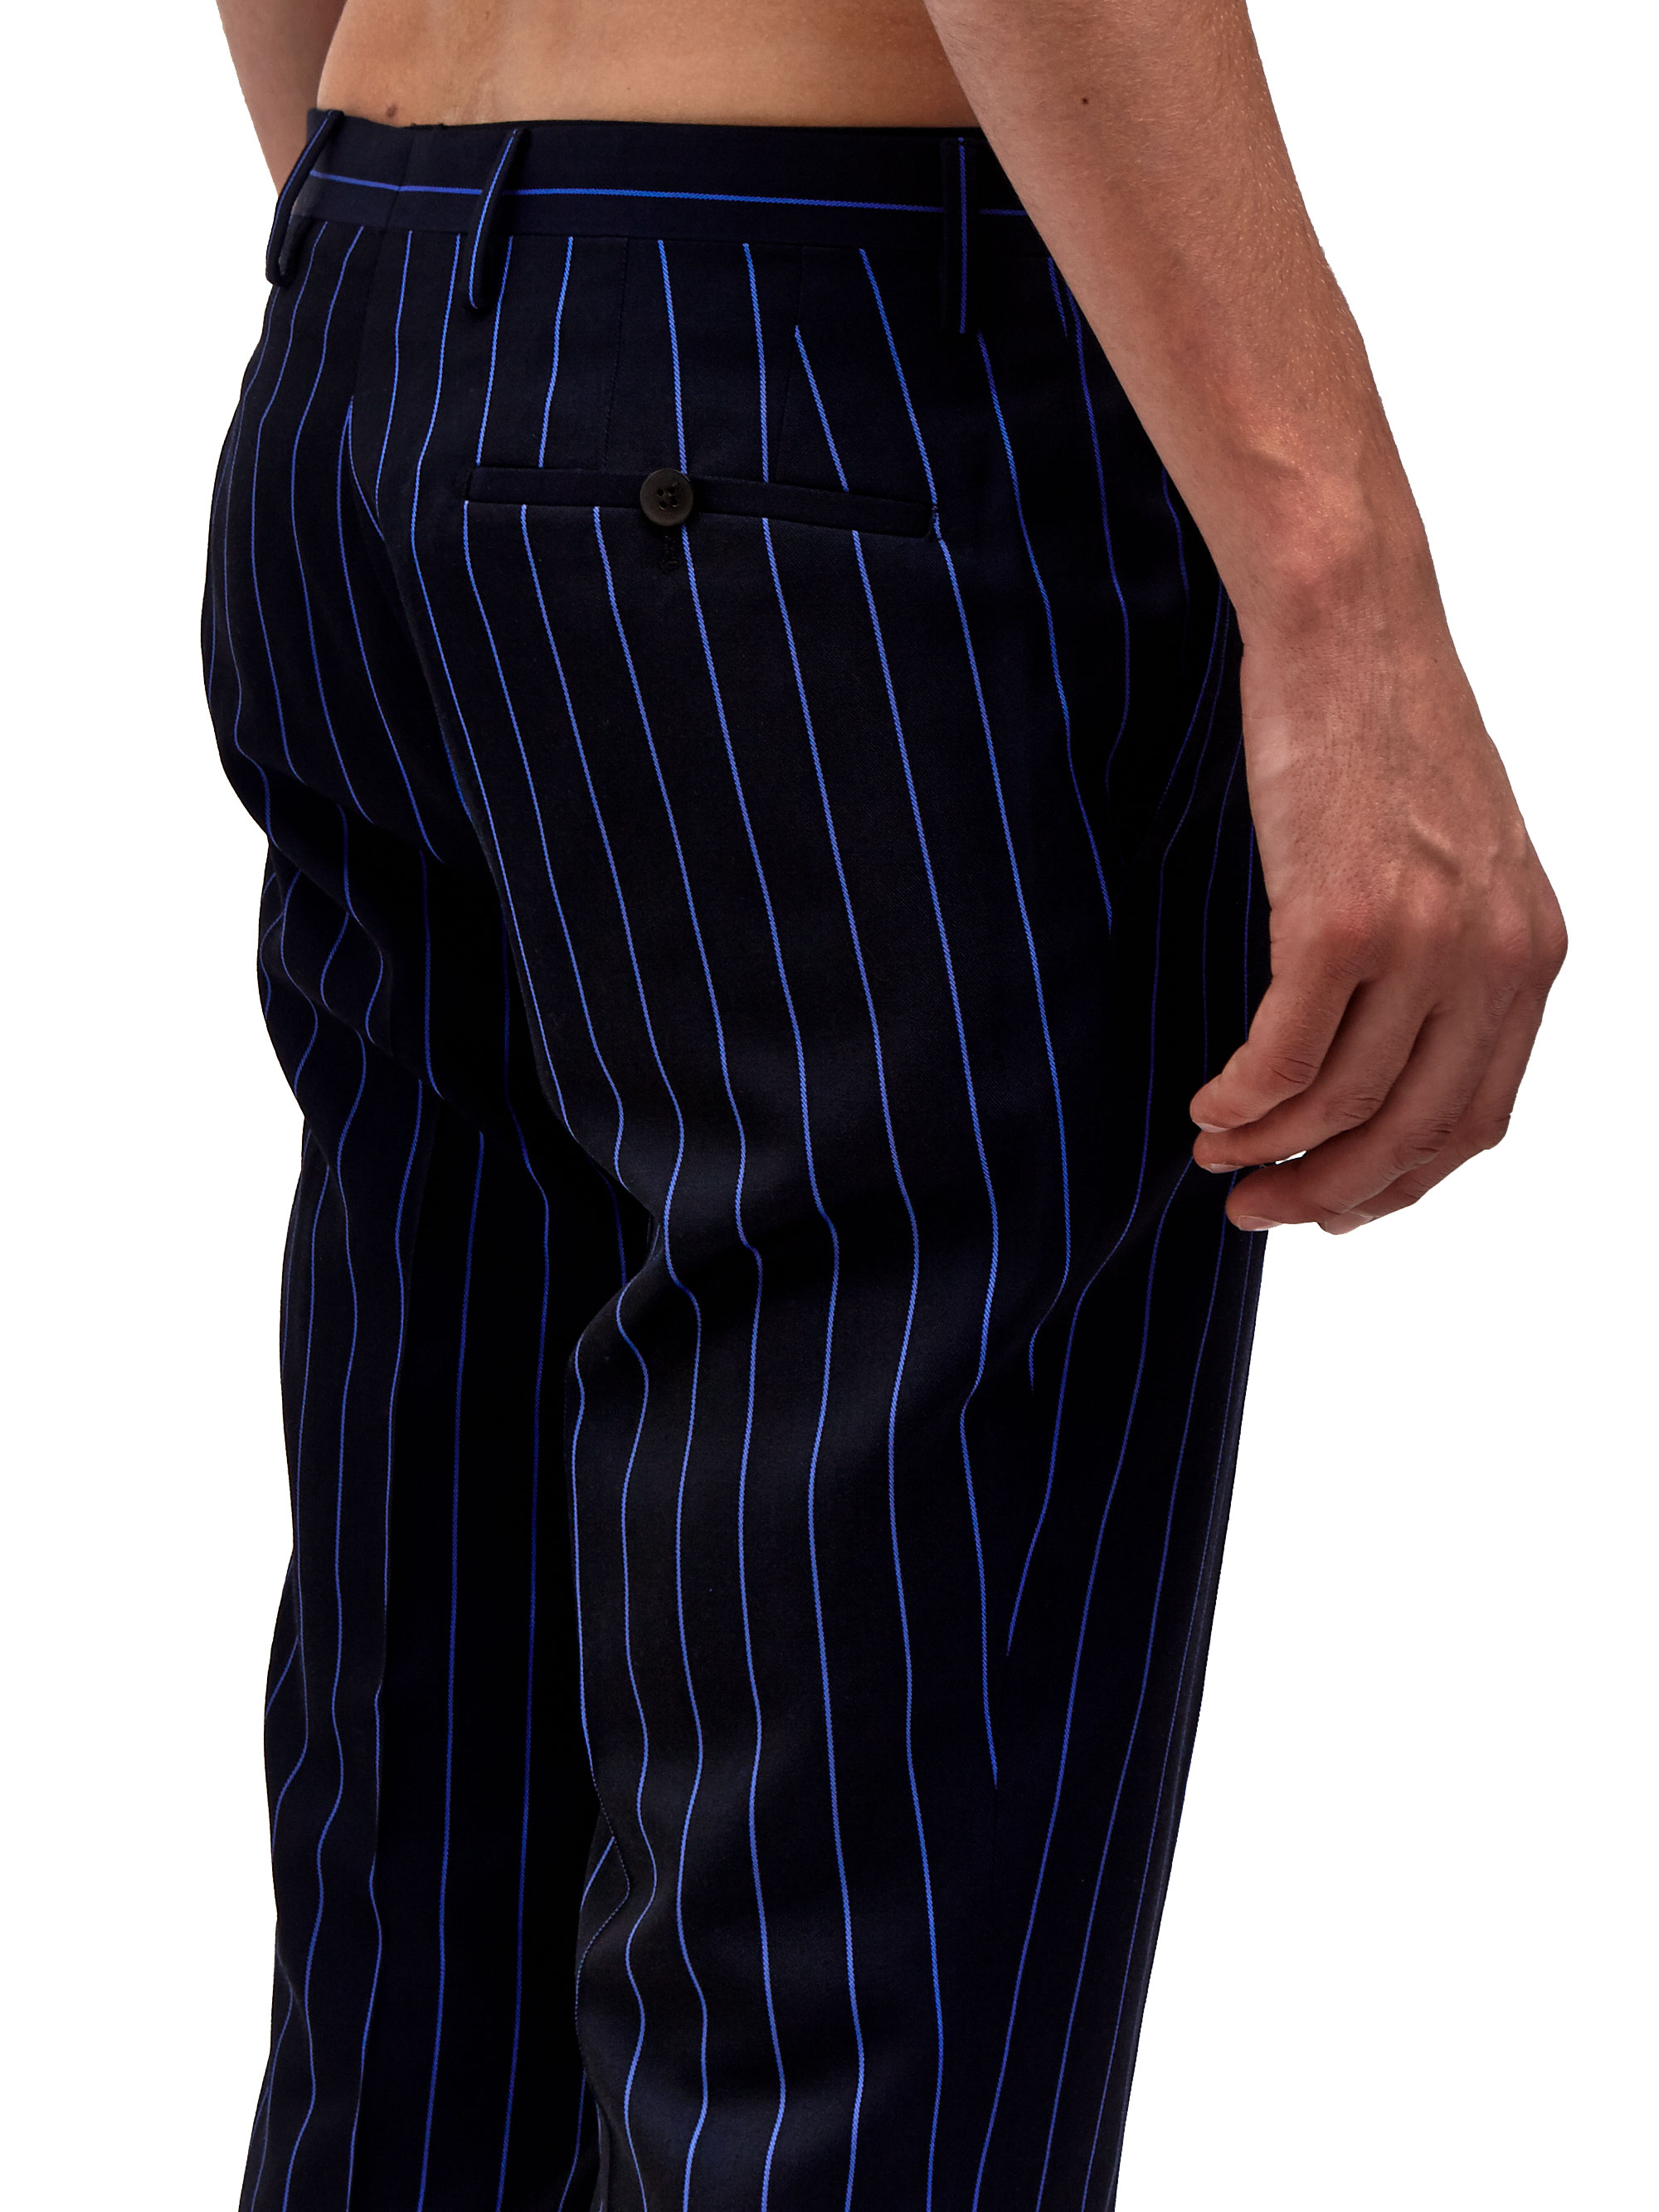 Find Traditional Mens Trousers at Historical Emporium! We have thousands of unique, hard-to-find items in vintage and antique styles. We are delighted to offer this wide selection of vintage style pants, in cotton or wool, and including many different hard-to-find striped trousers and invite you to visit our outfits page to see them in.